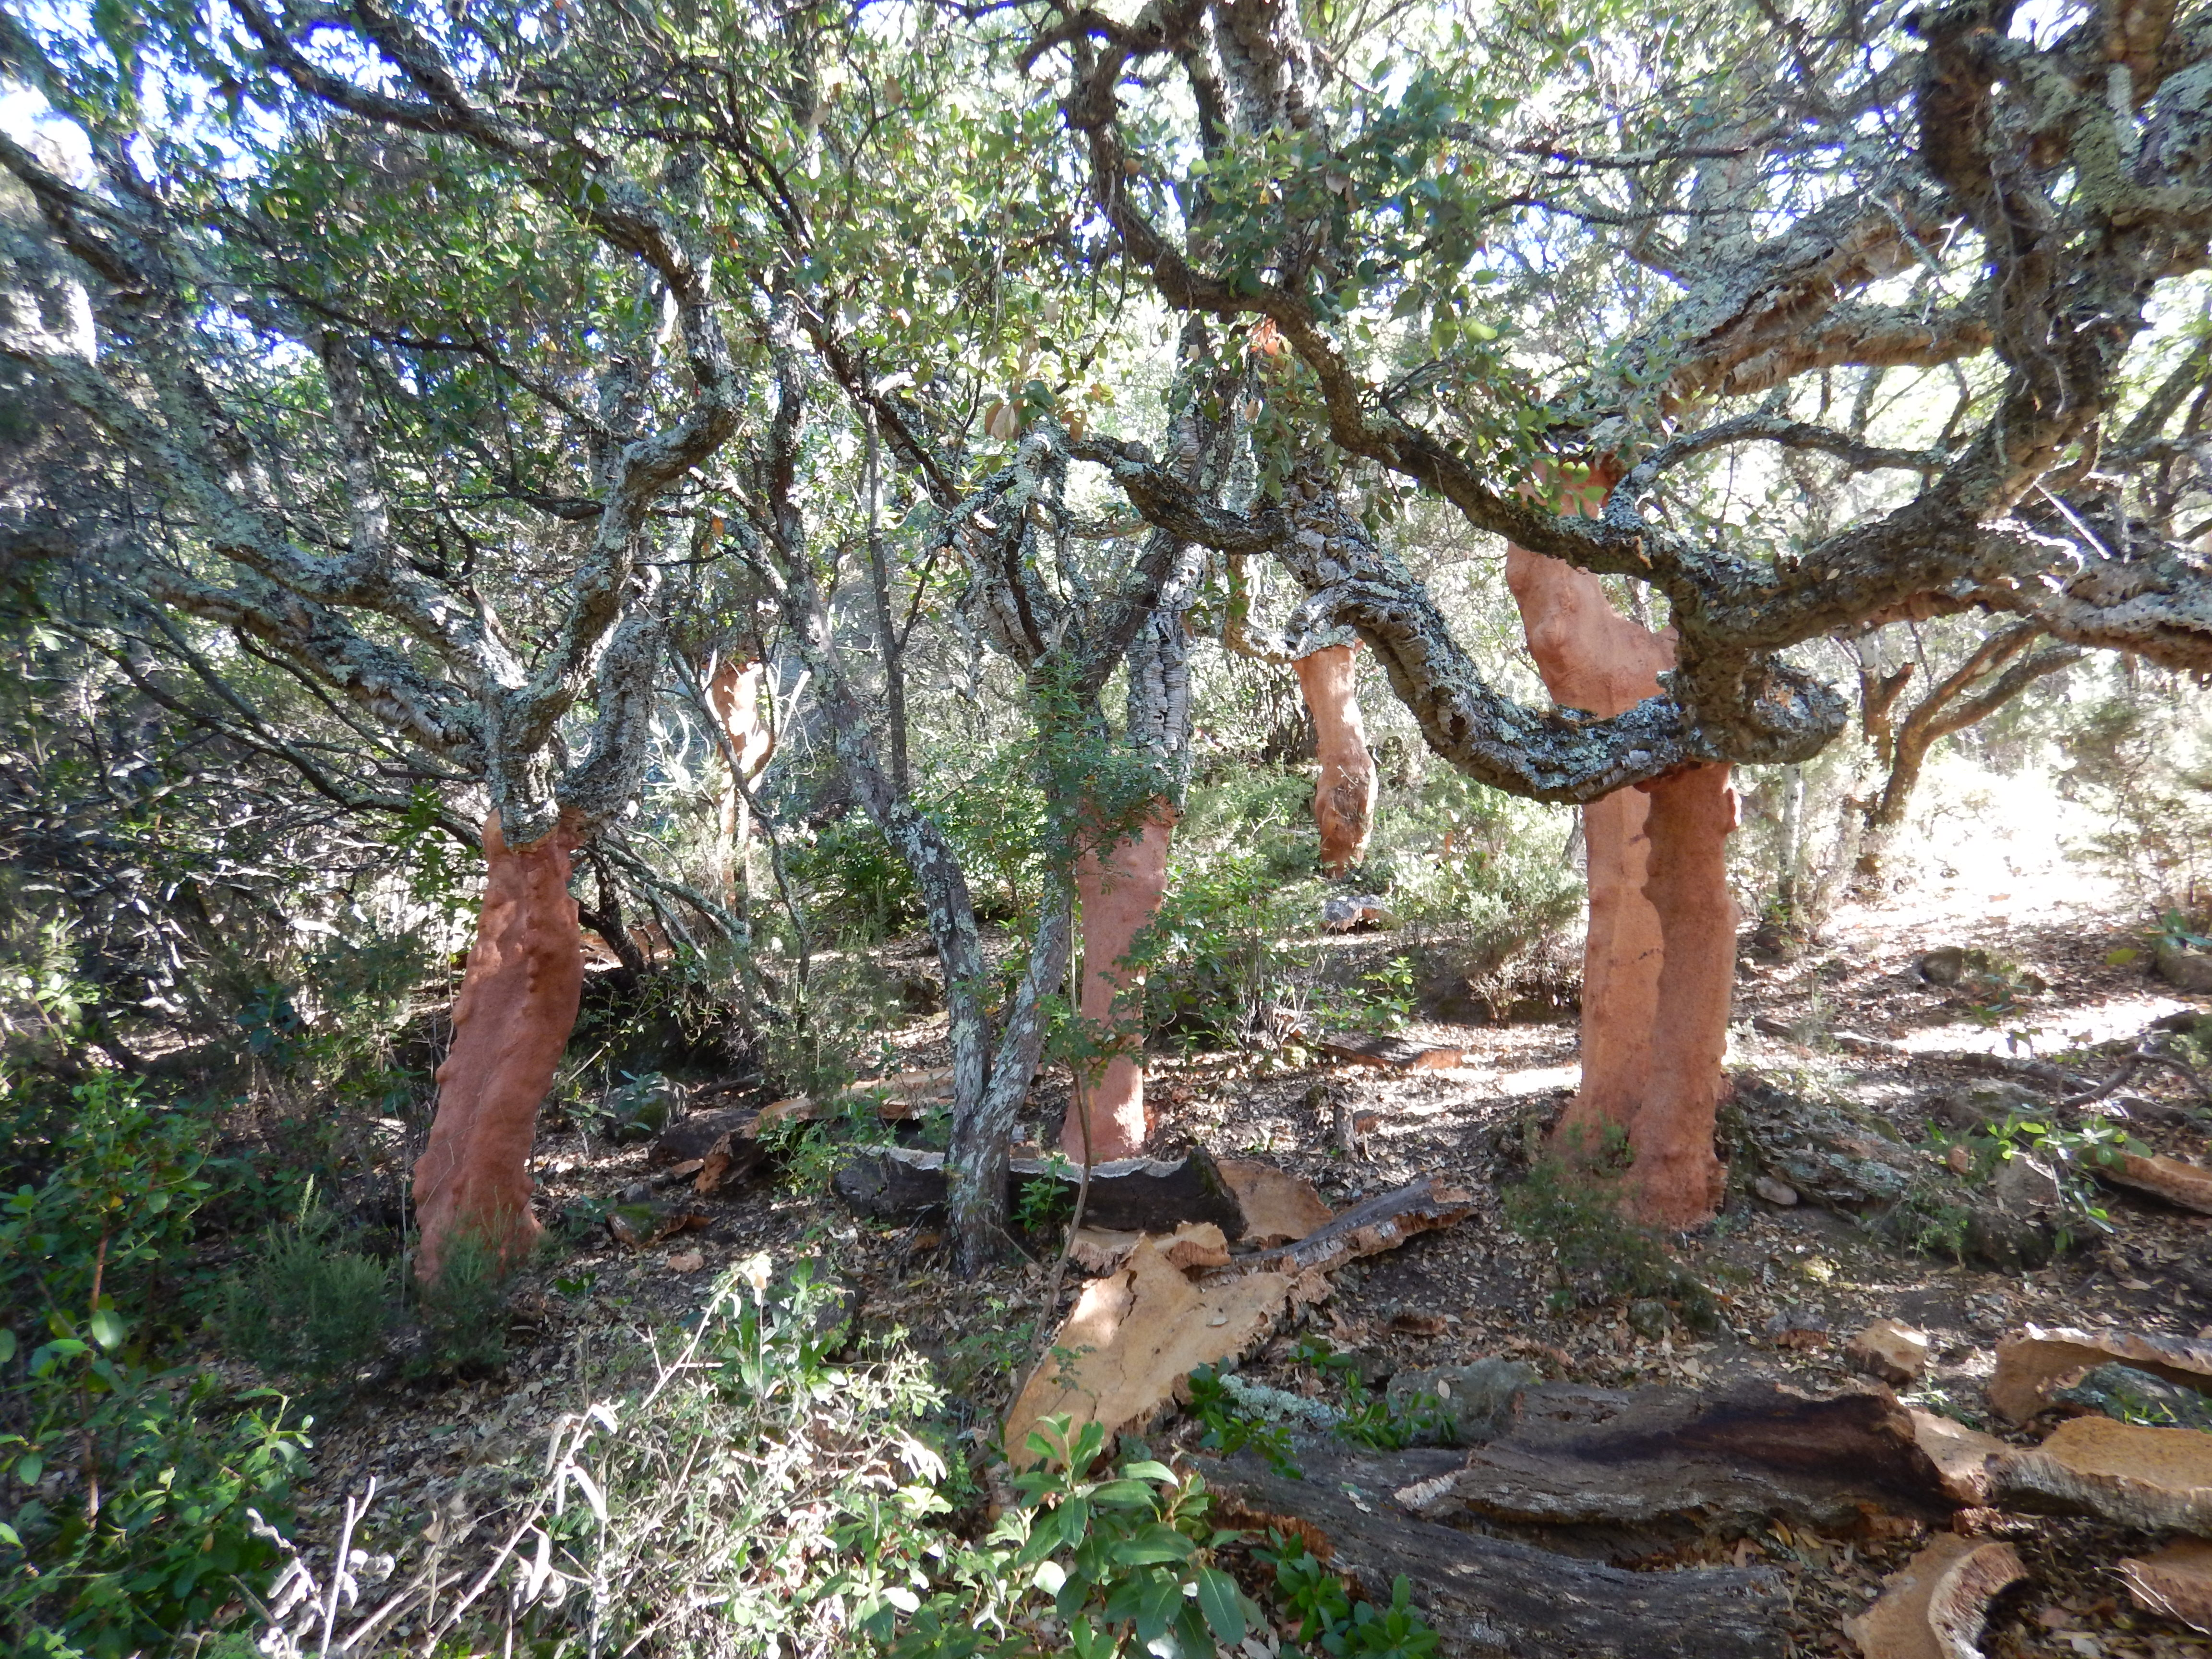 Cork harvesting work in the context of sustainable management